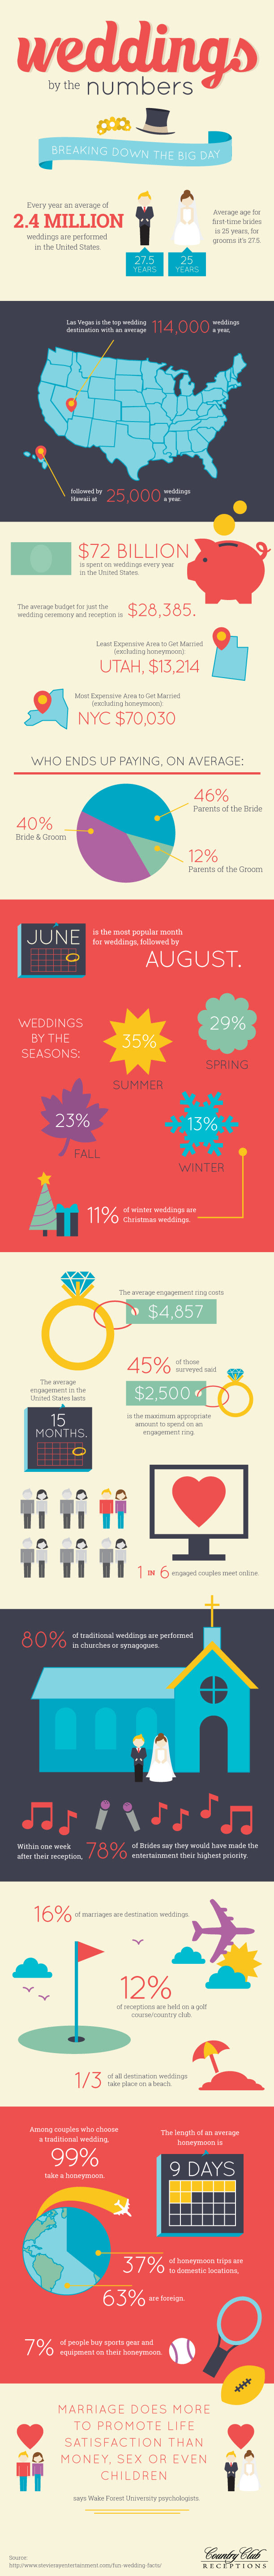 Infographic: Wedding By The Numbers #infographic